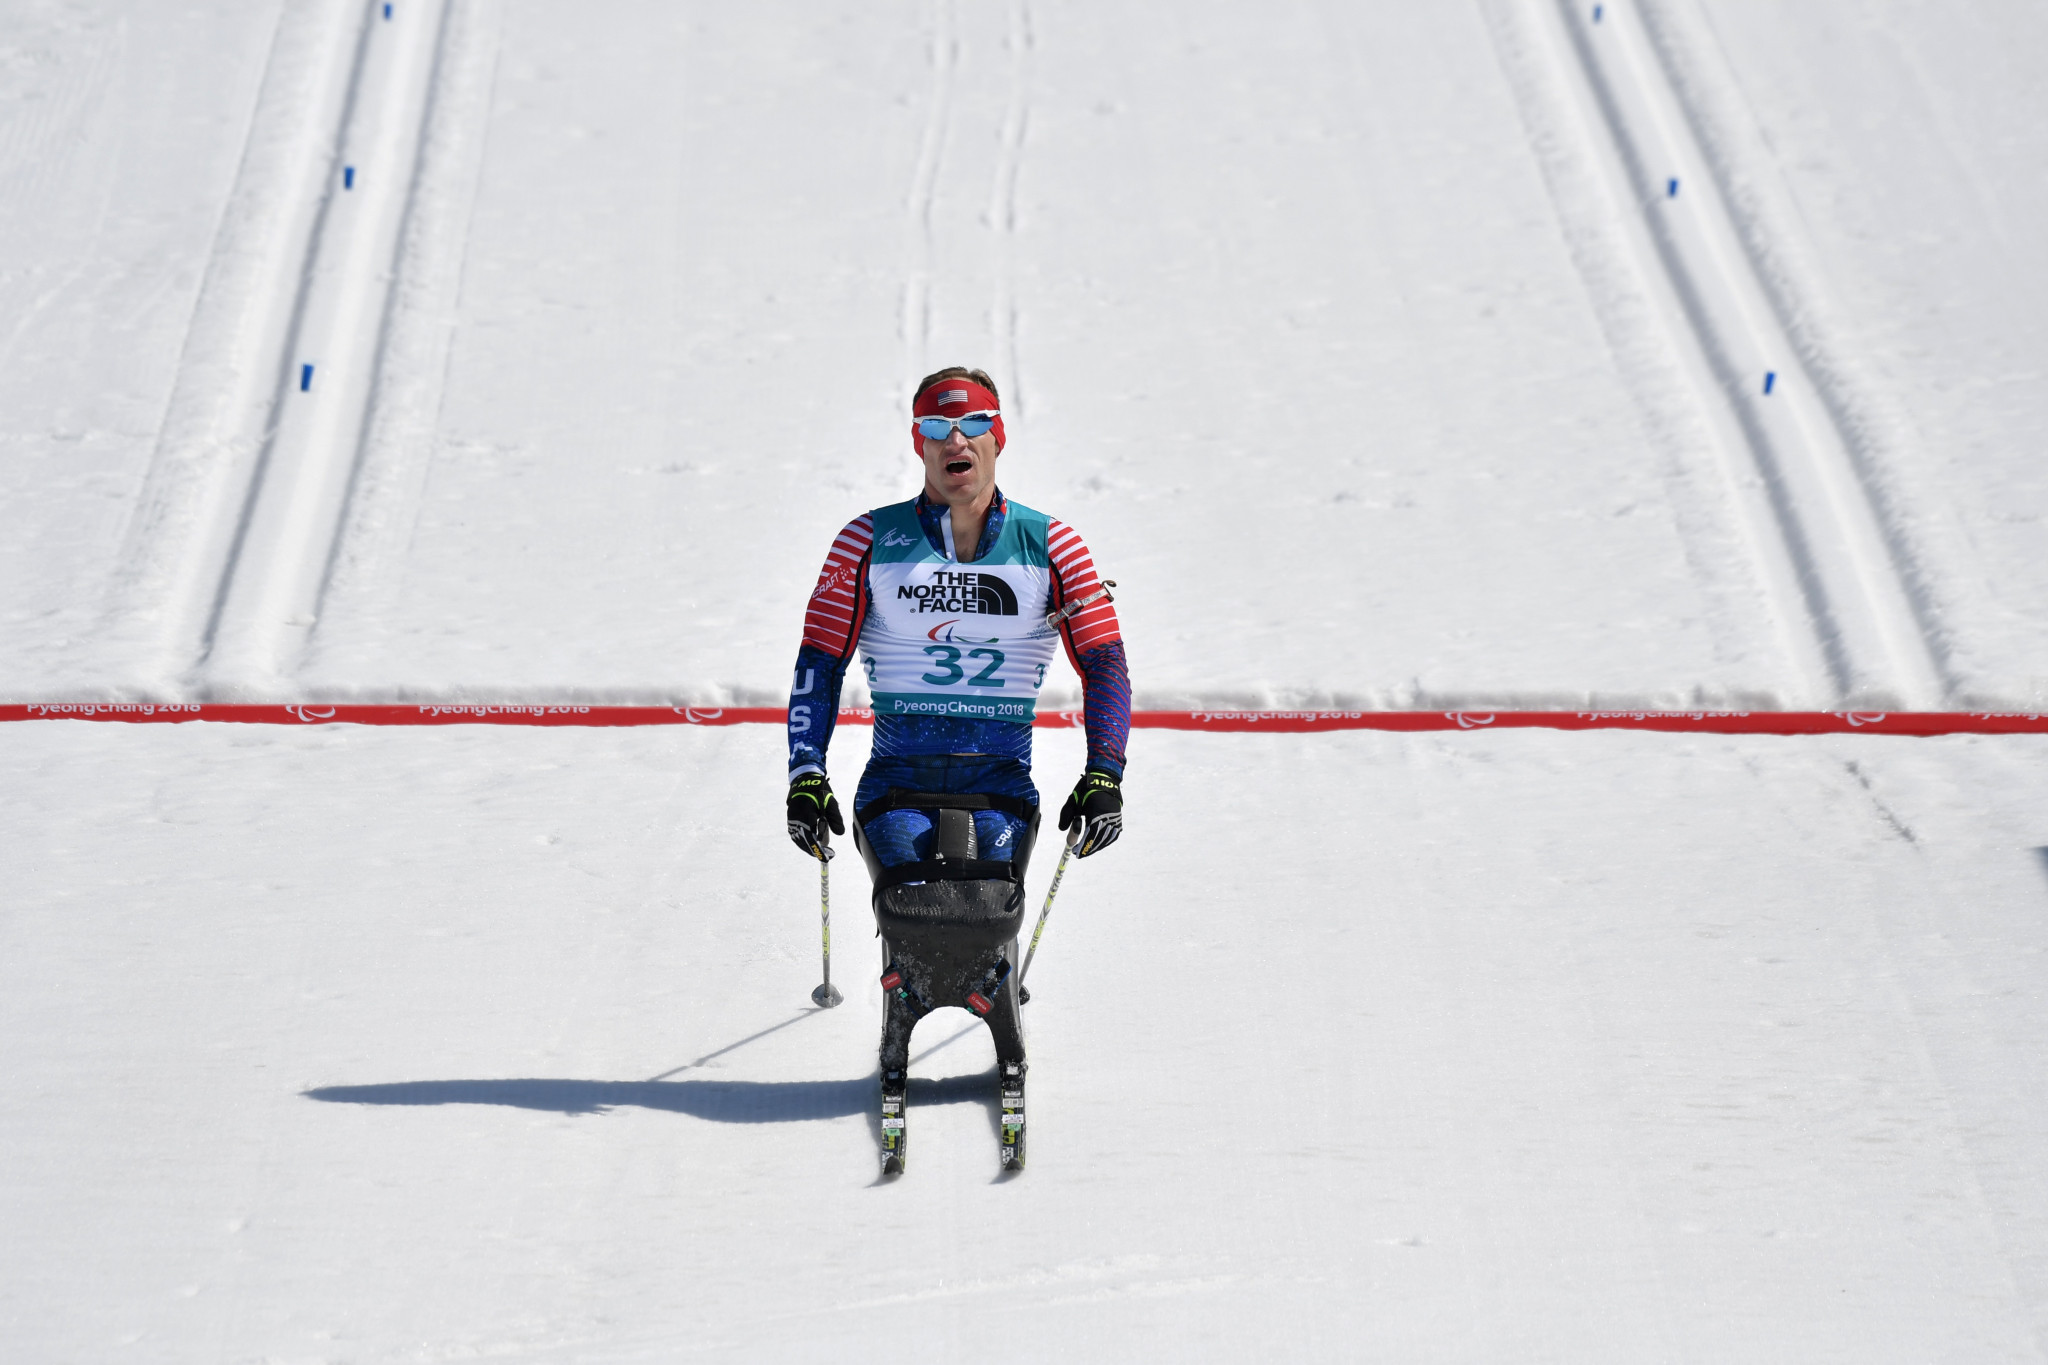 Daniel Cnossen will be looking to add more medals to his tally in Sweden ©Getty Images